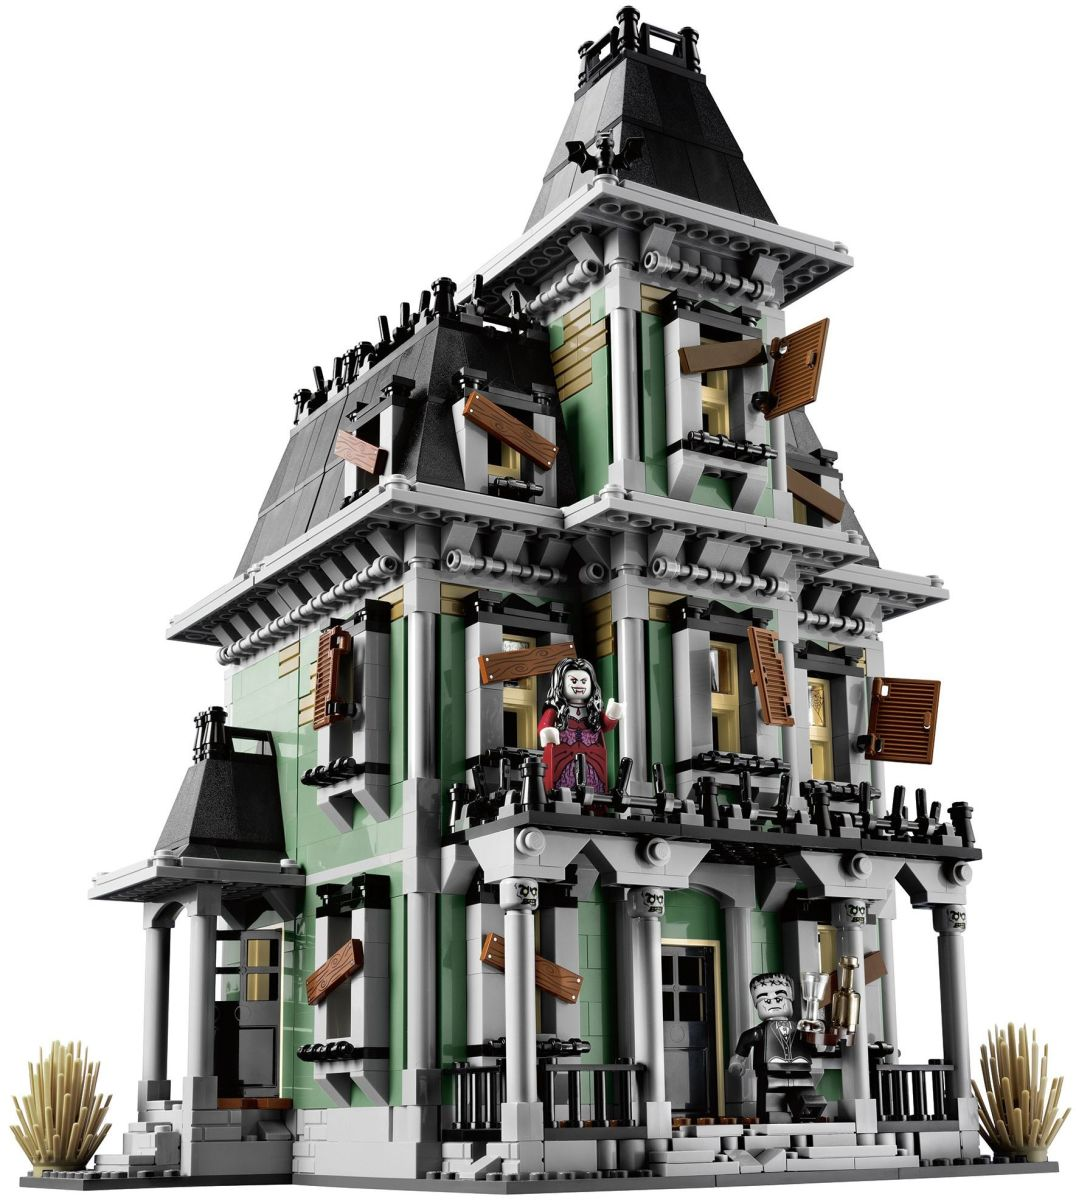 LEGO Monster Fighters Haunted House 10228 Assembled Outside